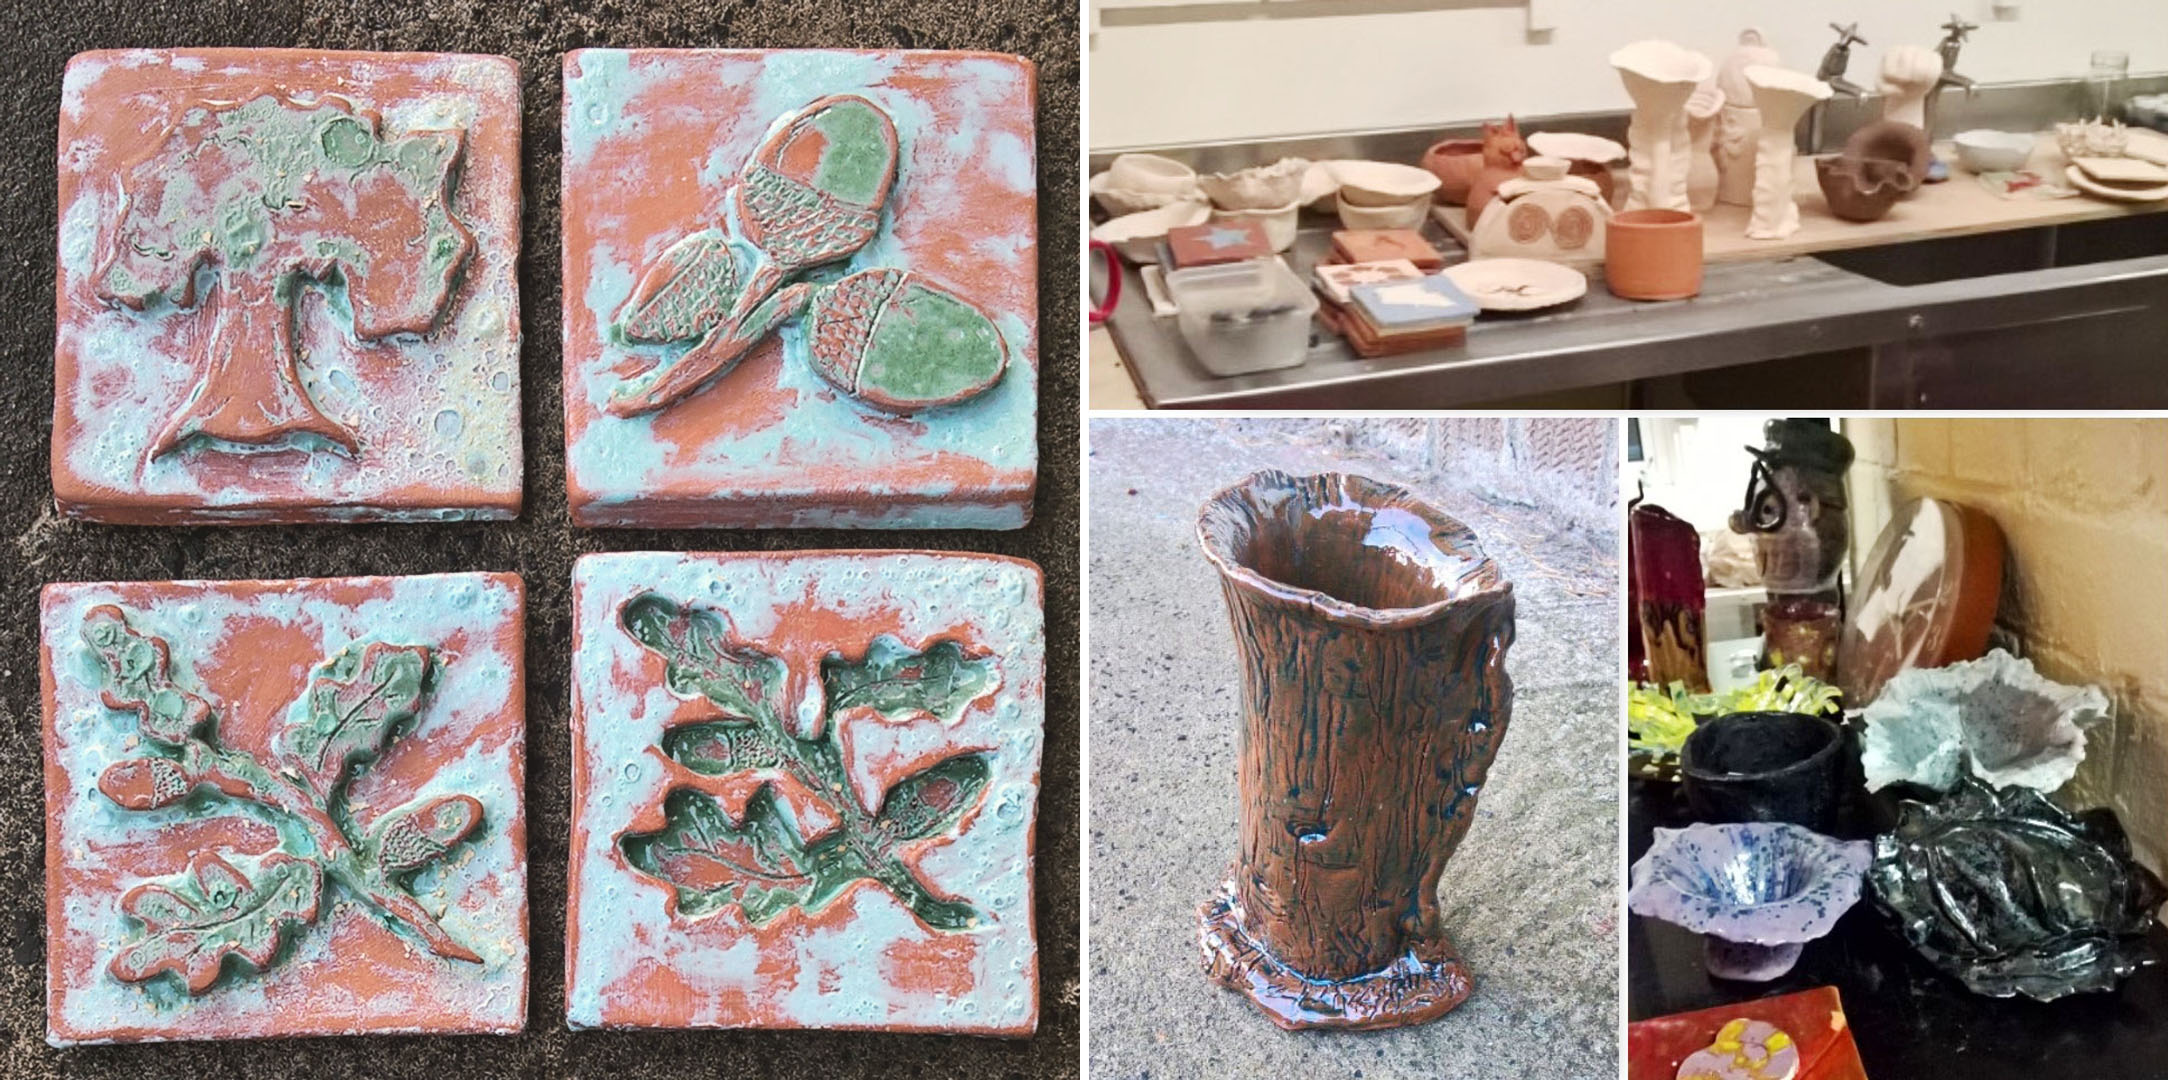 clay-oak-tiles-slab-work-trre-trunk-vase-and-pottery-class-lisa-shambrook-greenspace-carers-oct-2016